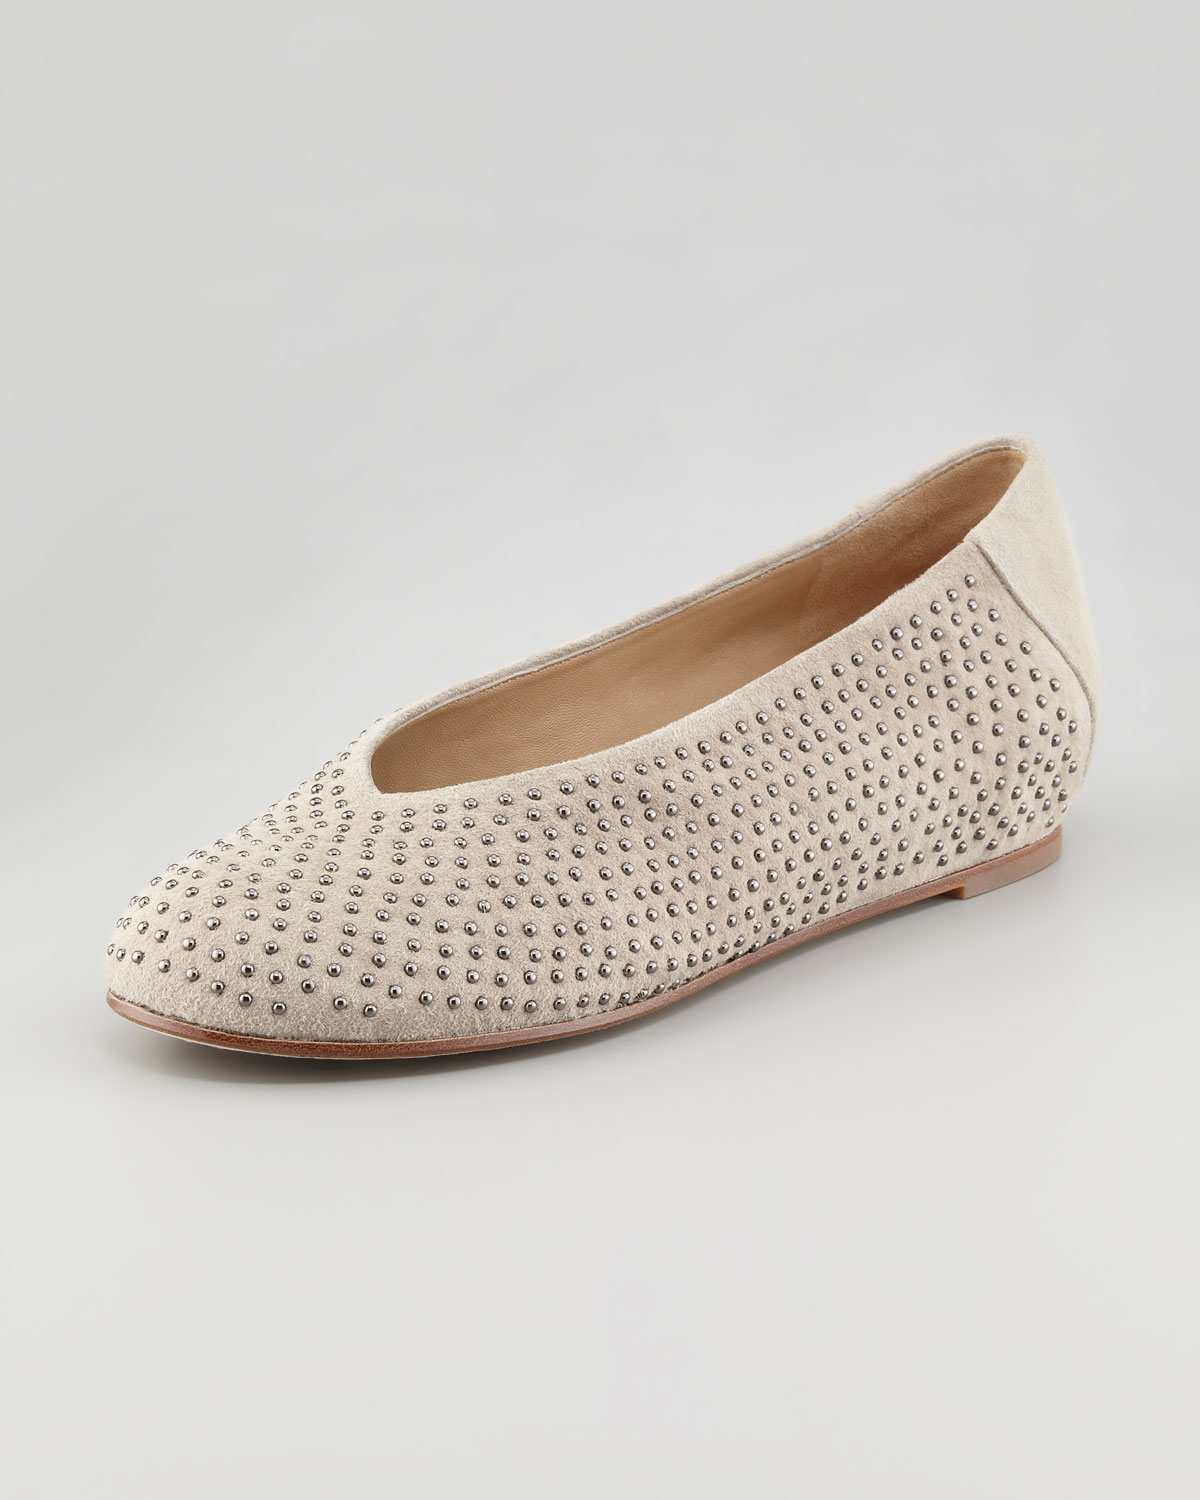 Patch 2 Suede Studded Flats, Almond